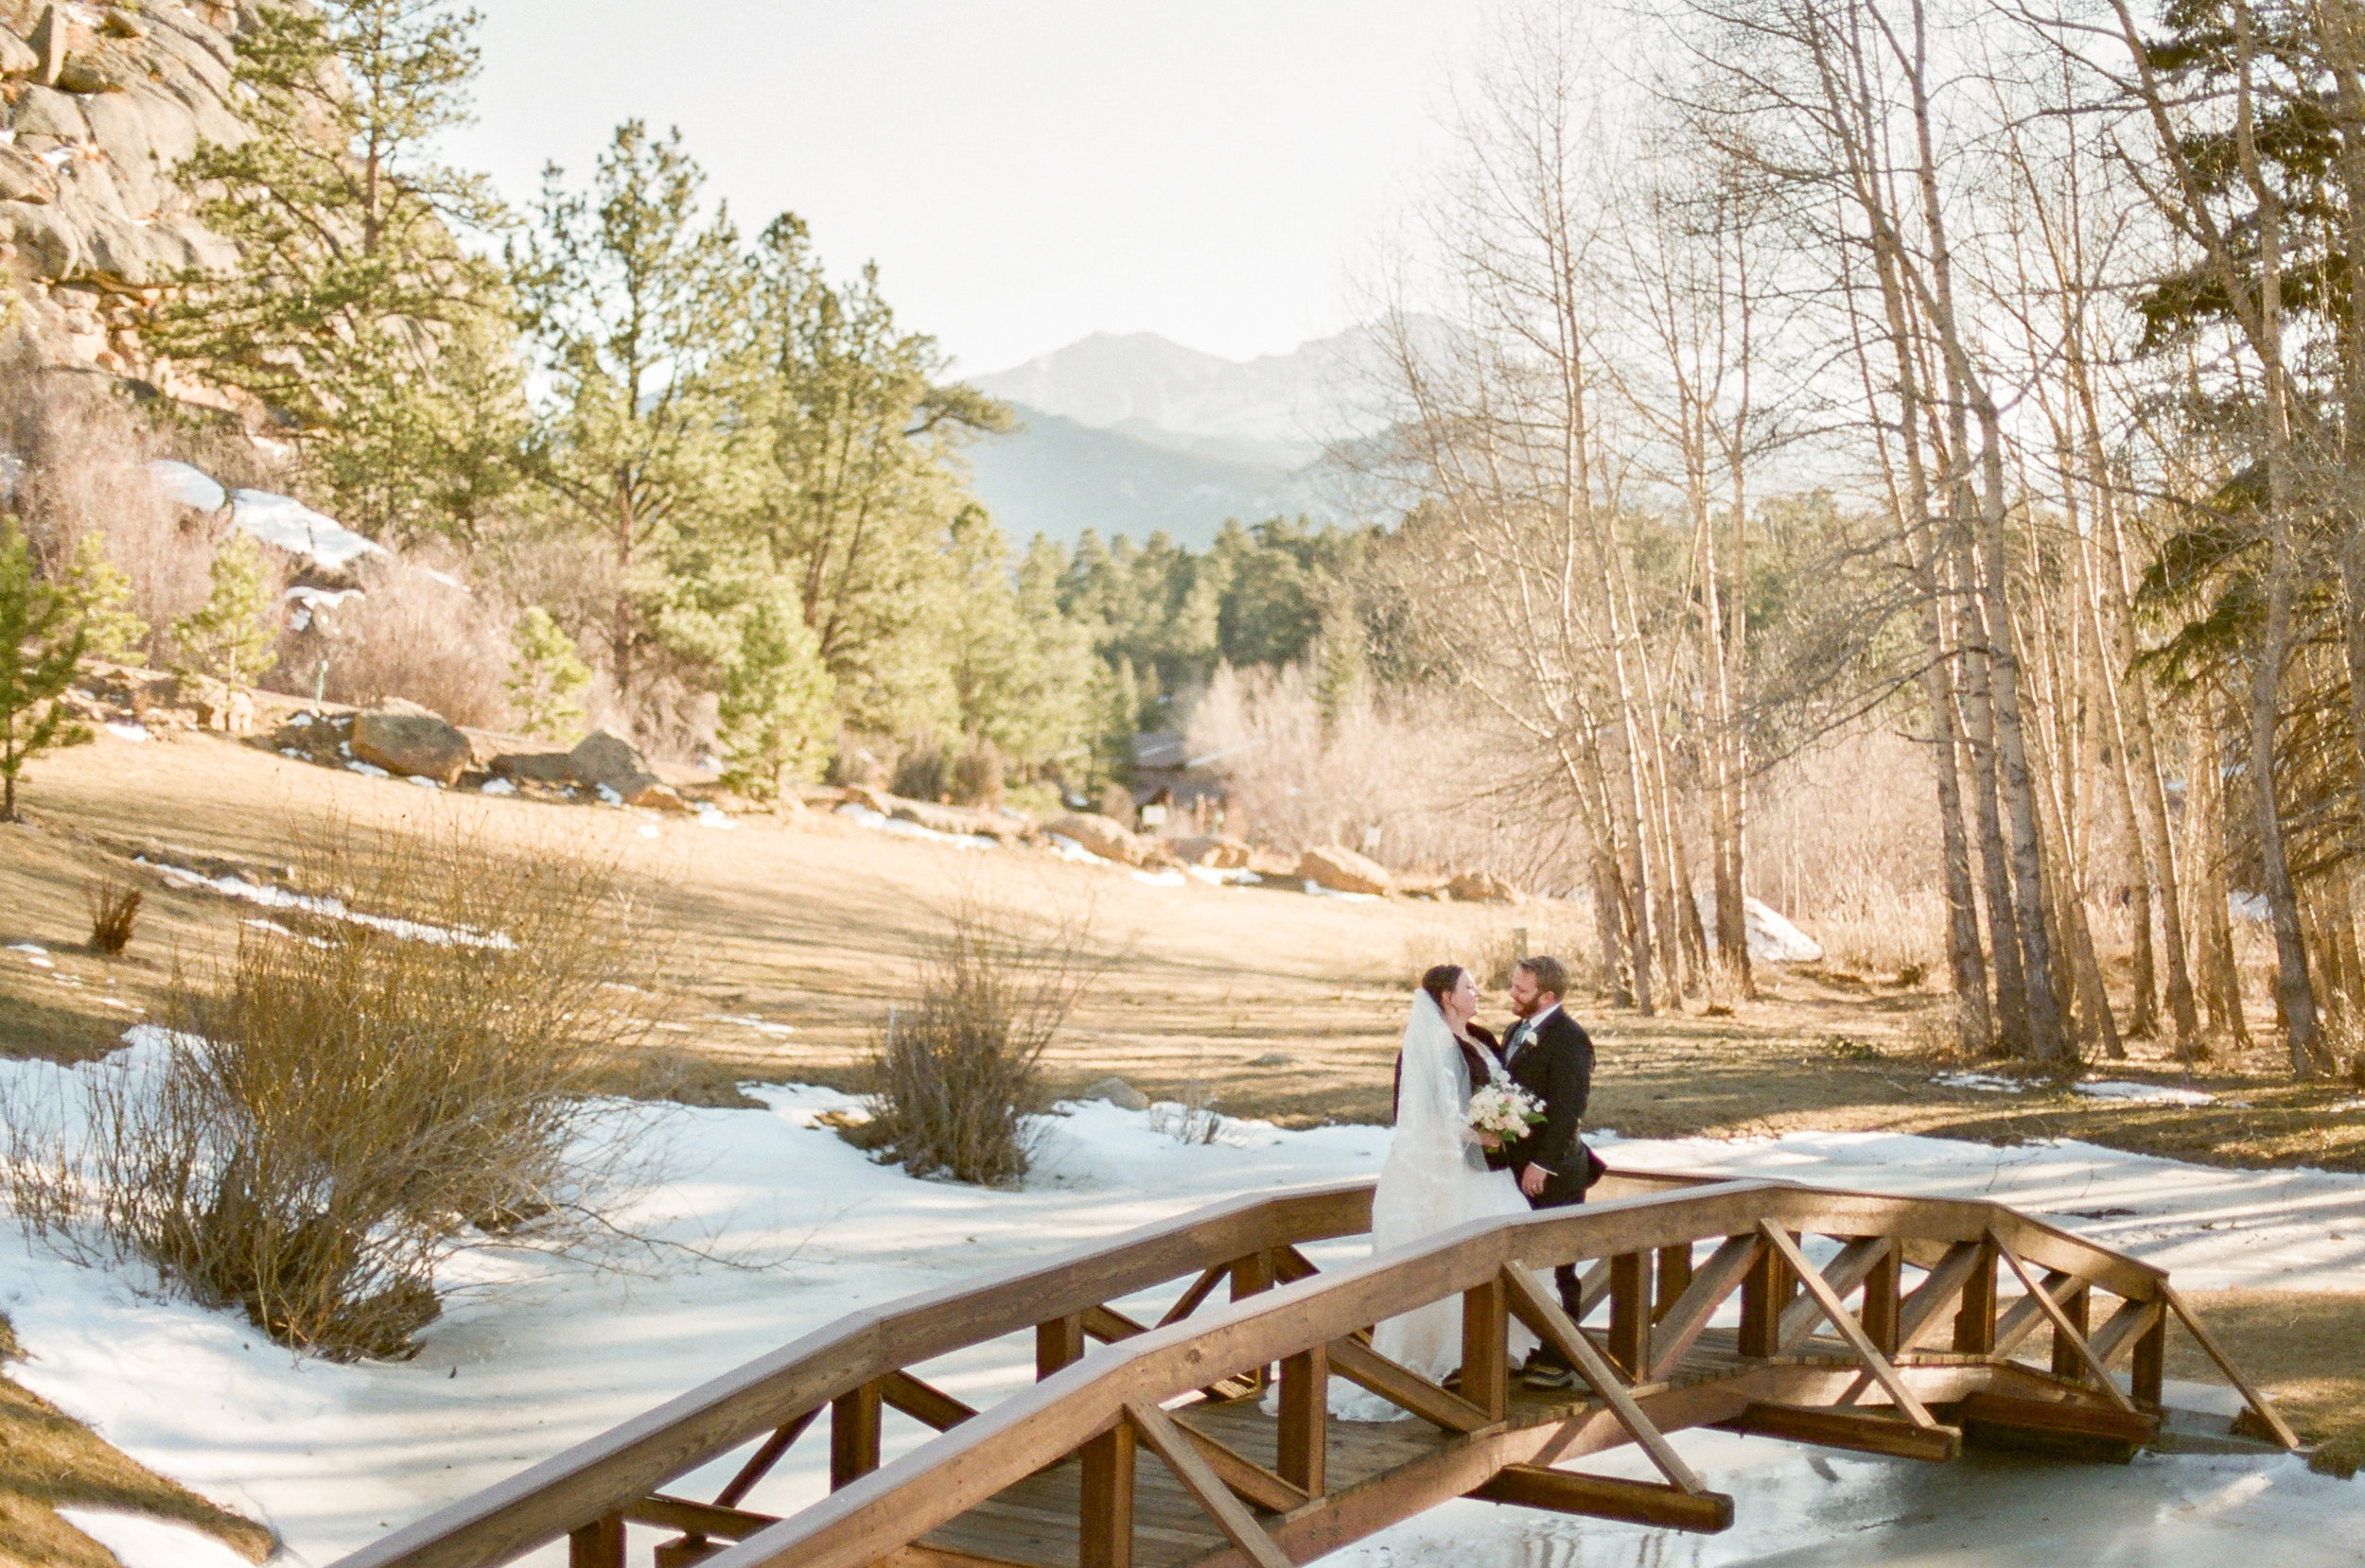 Twin_Owls_Steakhouse-wedding_photographer_Estes_Park_Lisa_ODwyer-679.jpg